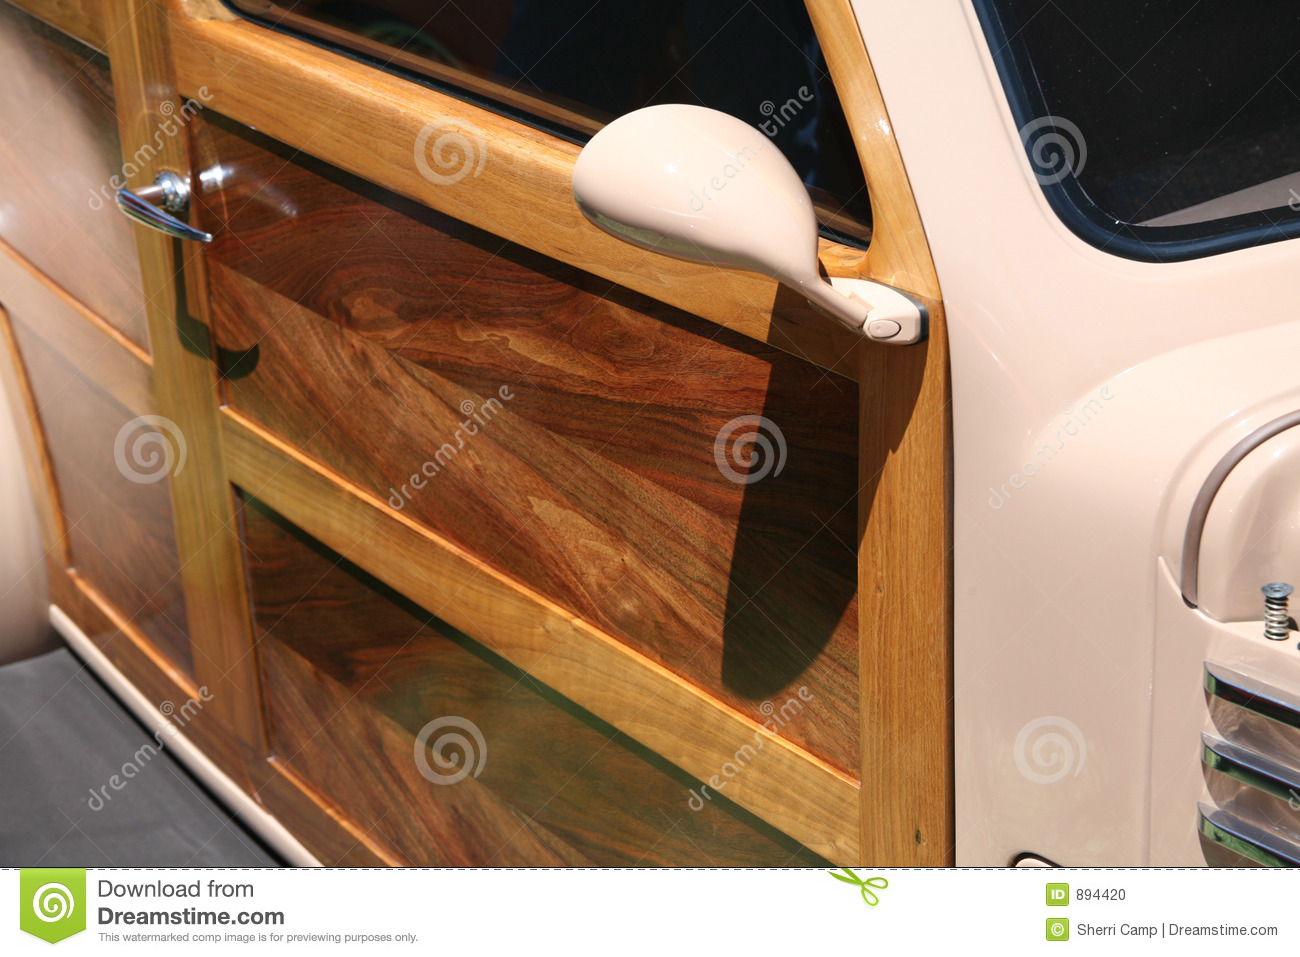 wood panel door on classic sedan car stock photo image 894420. Black Bedroom Furniture Sets. Home Design Ideas